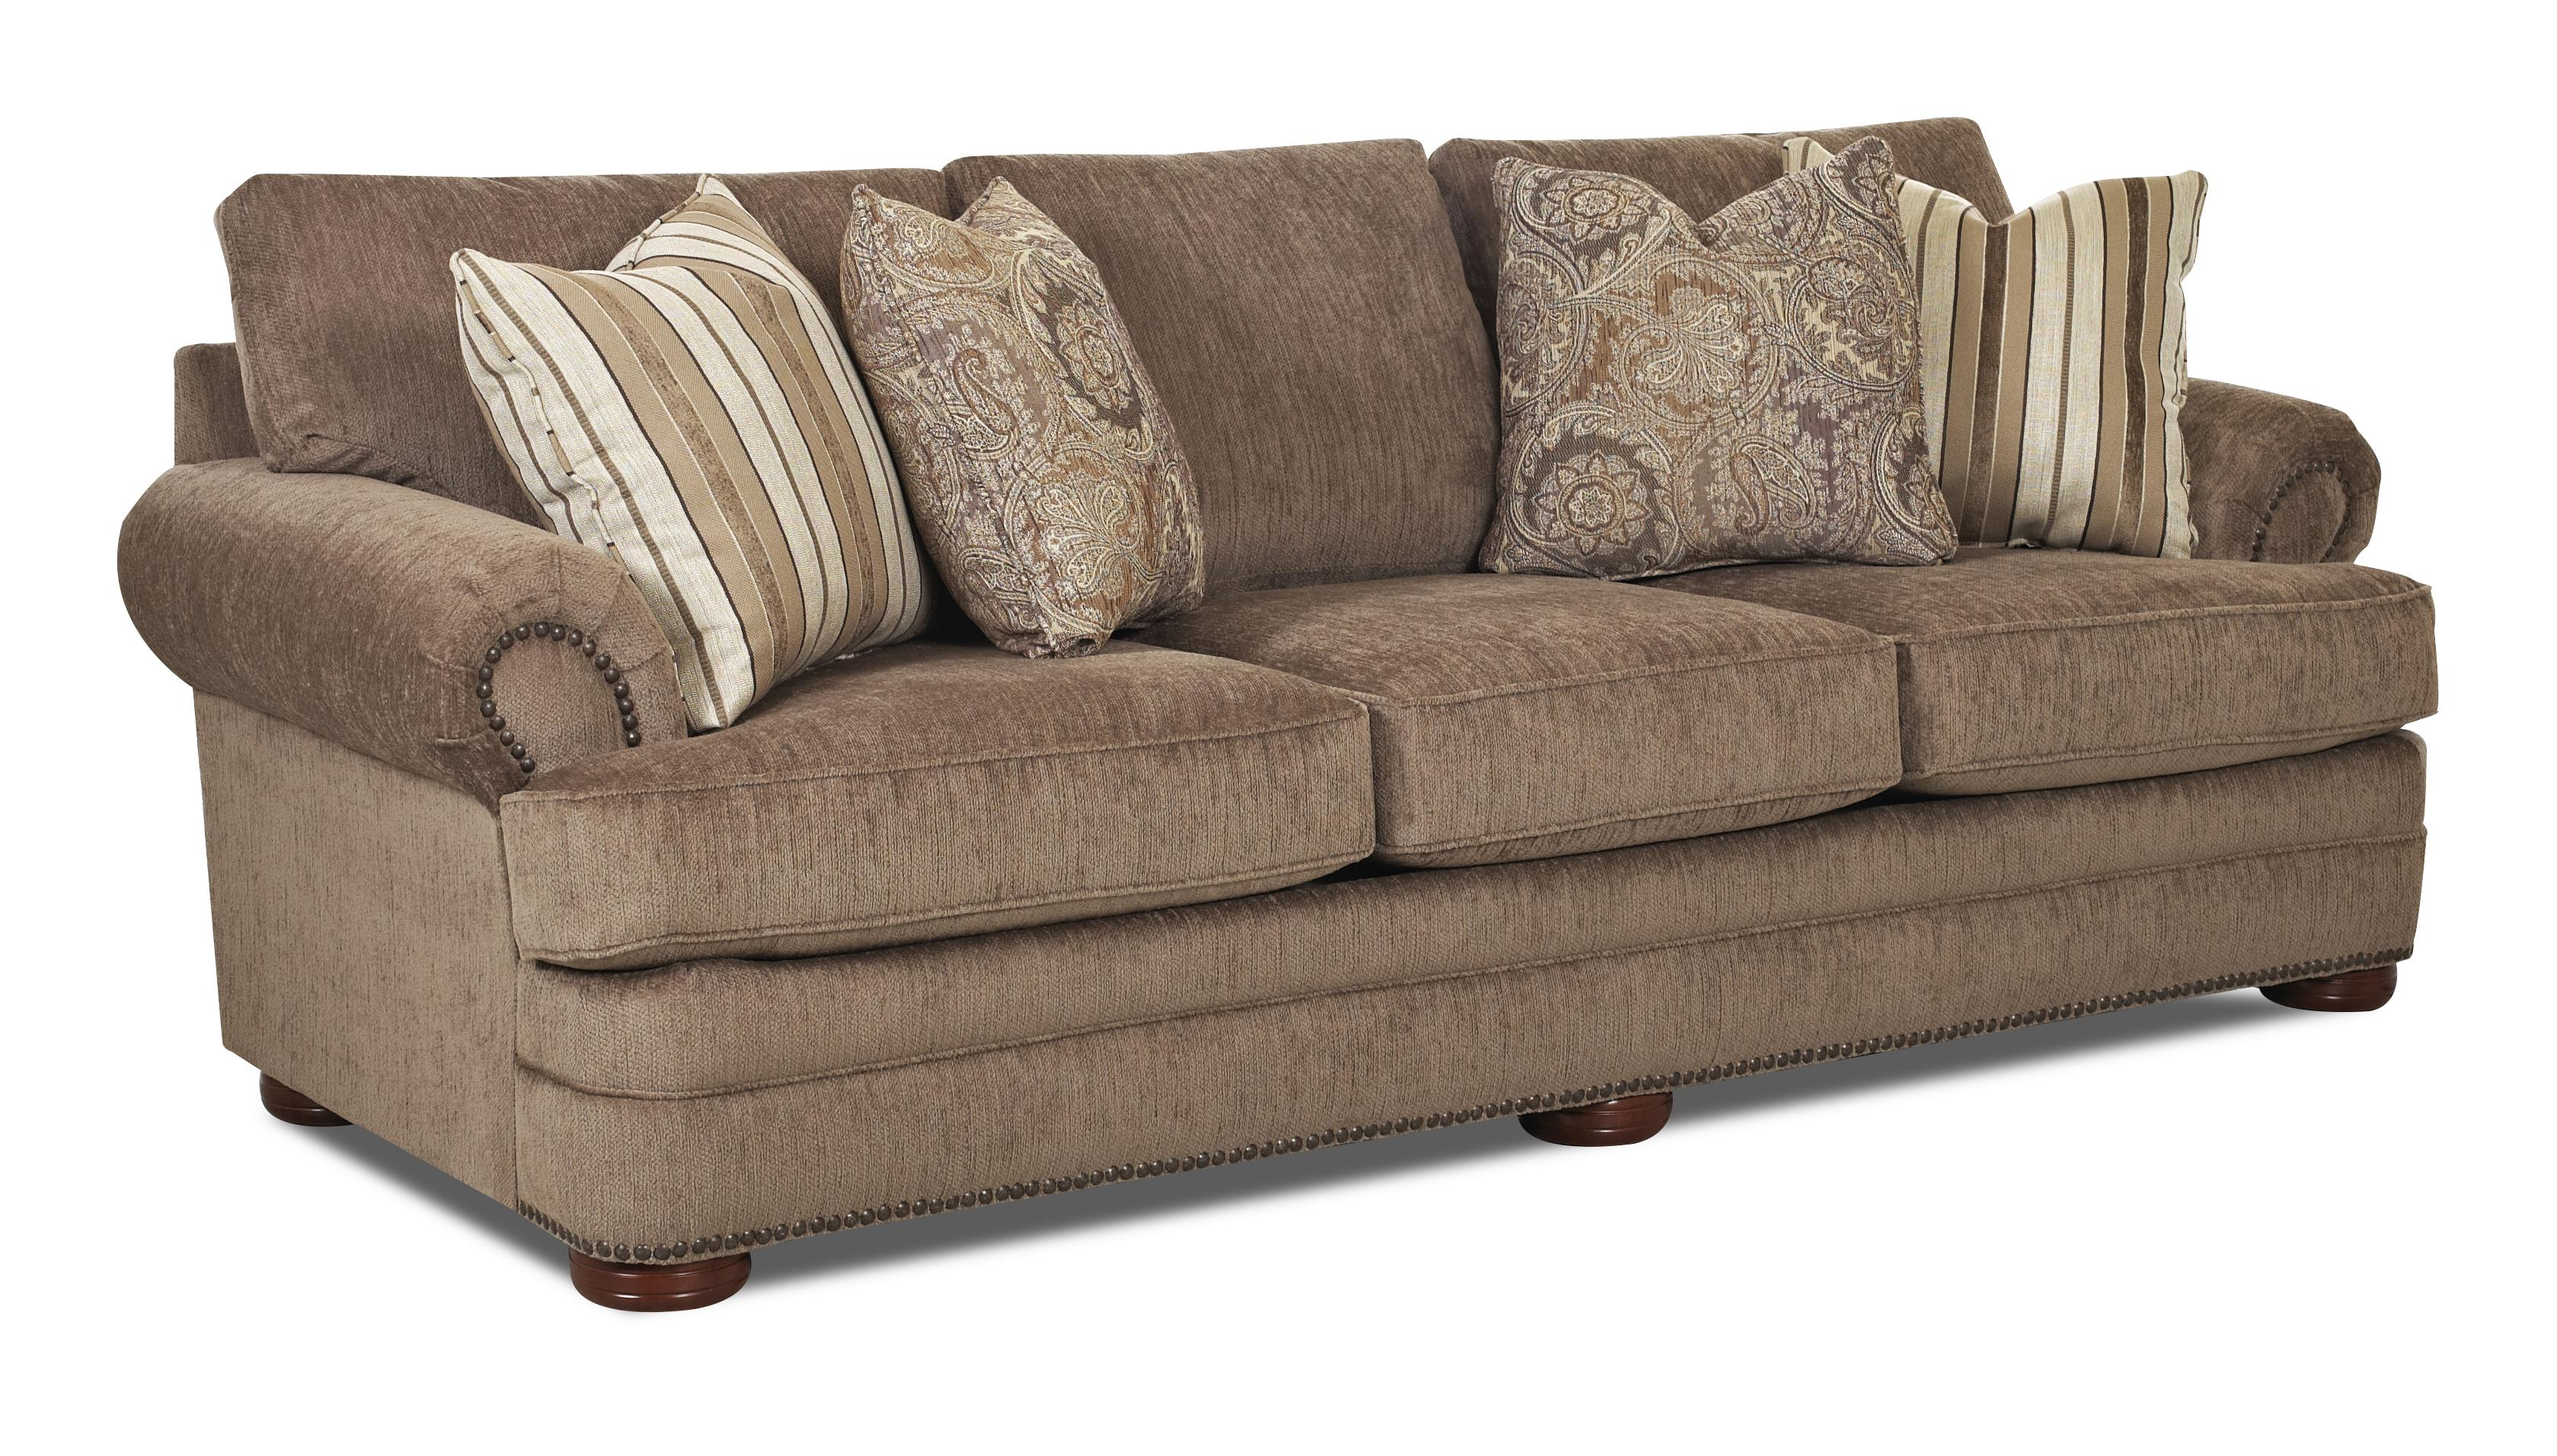 Klaussner tolbert k90810 s traditional sofa with rolled for Klaussner sofa